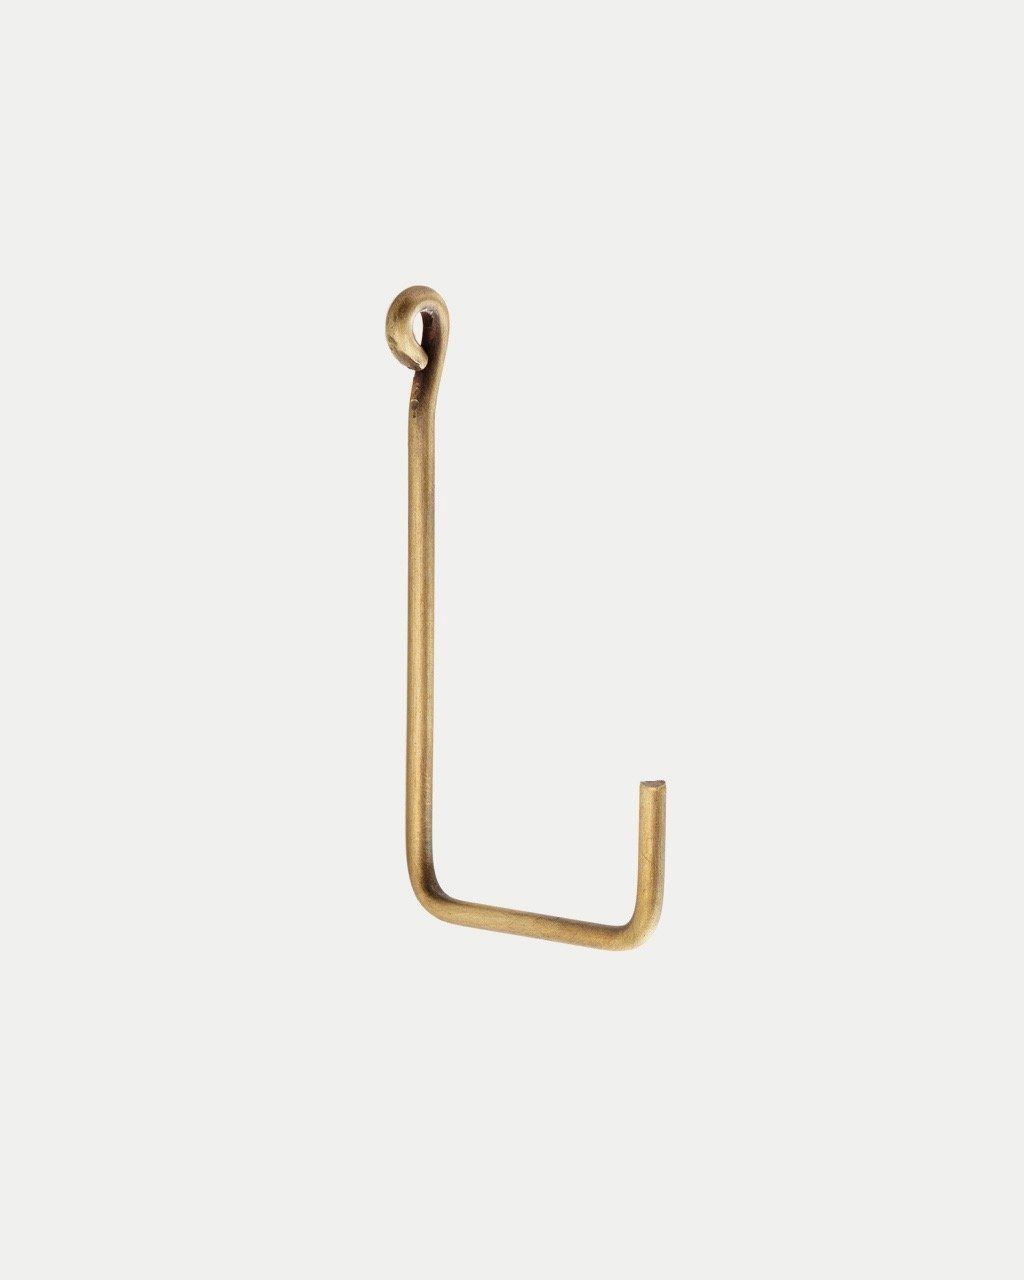 Fog Linen, Handmade Brass Single Hooks, Medium- Placewares